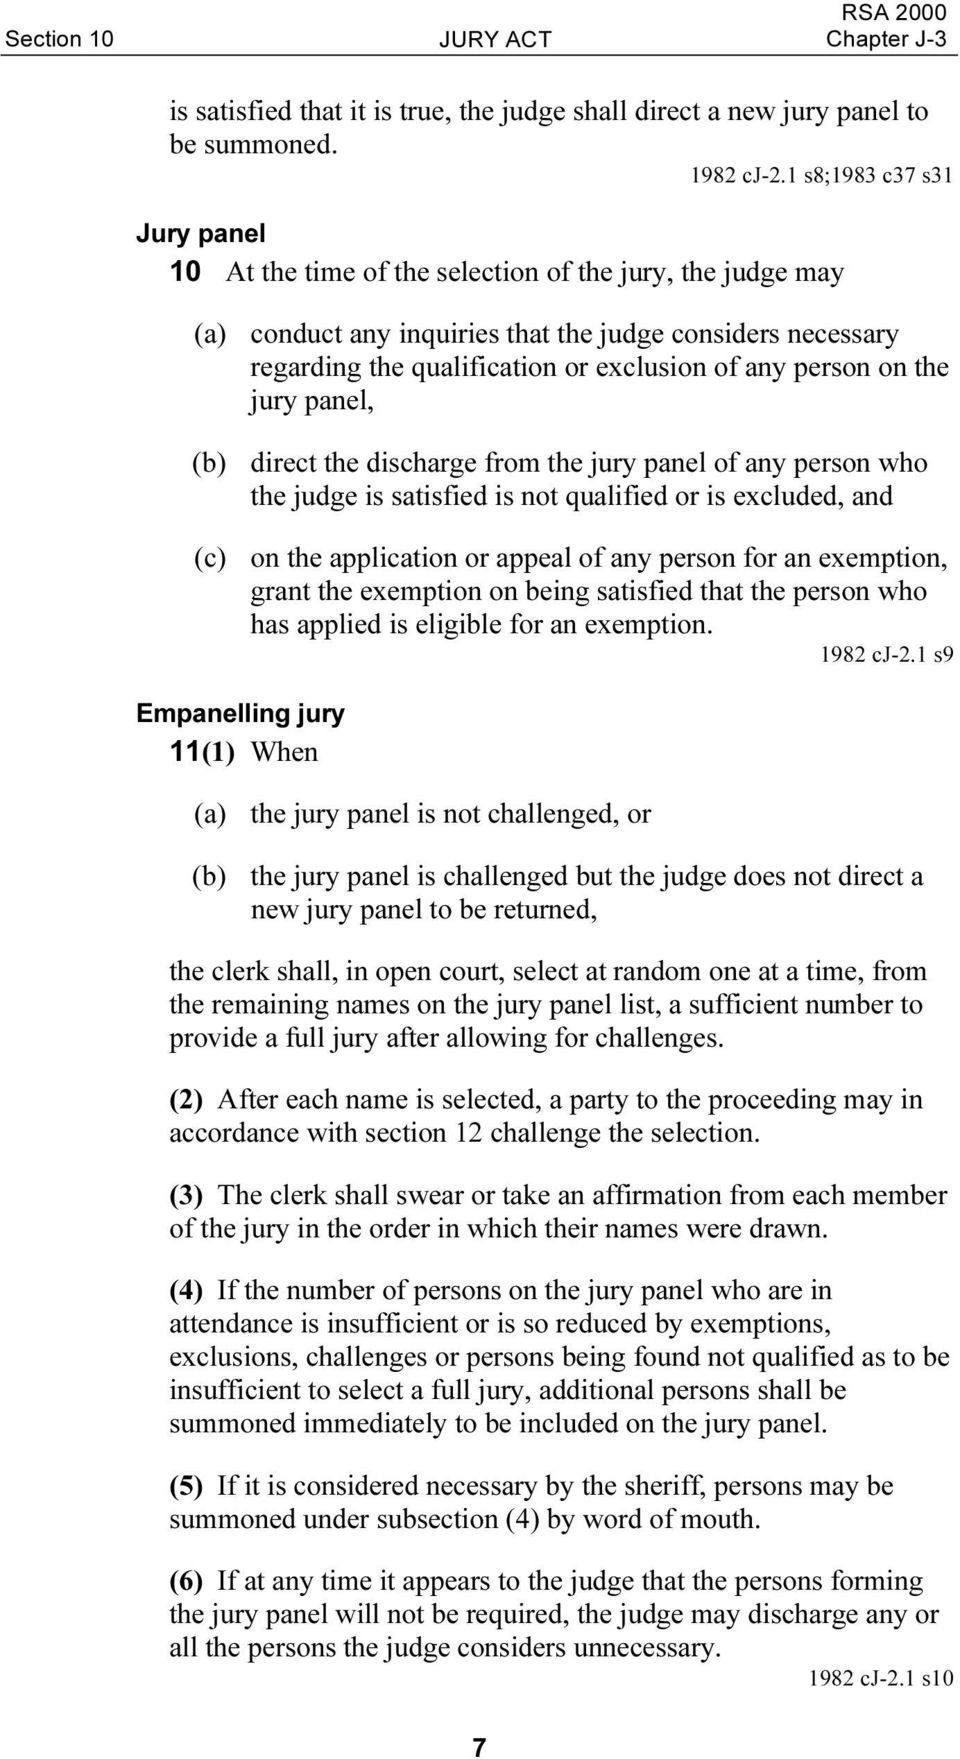 person on the jury panel, (b) direct the discharge from the jury panel of any person who the judge is satisfied is not qualified or is excluded, and (c) on the application or appeal of any person for